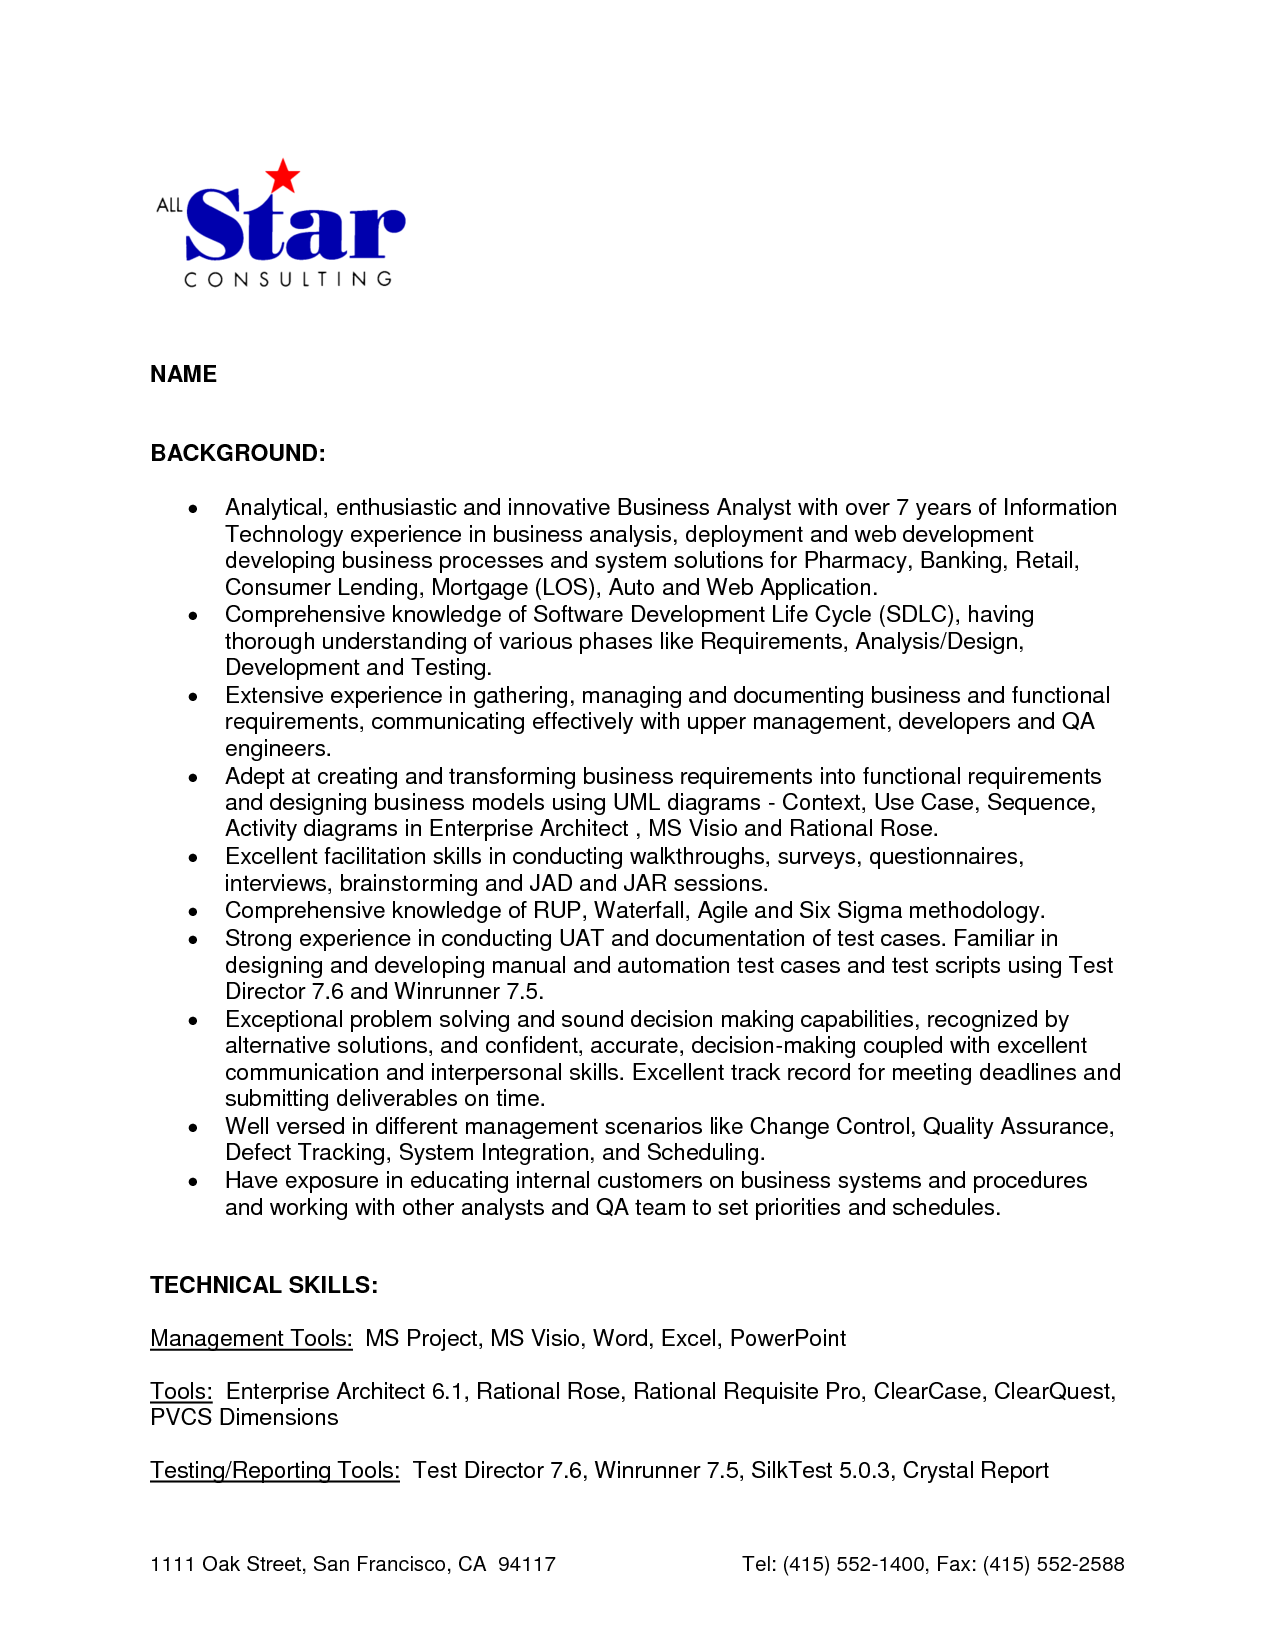 Art gallery manager cover letter. A performance artist has given her ...